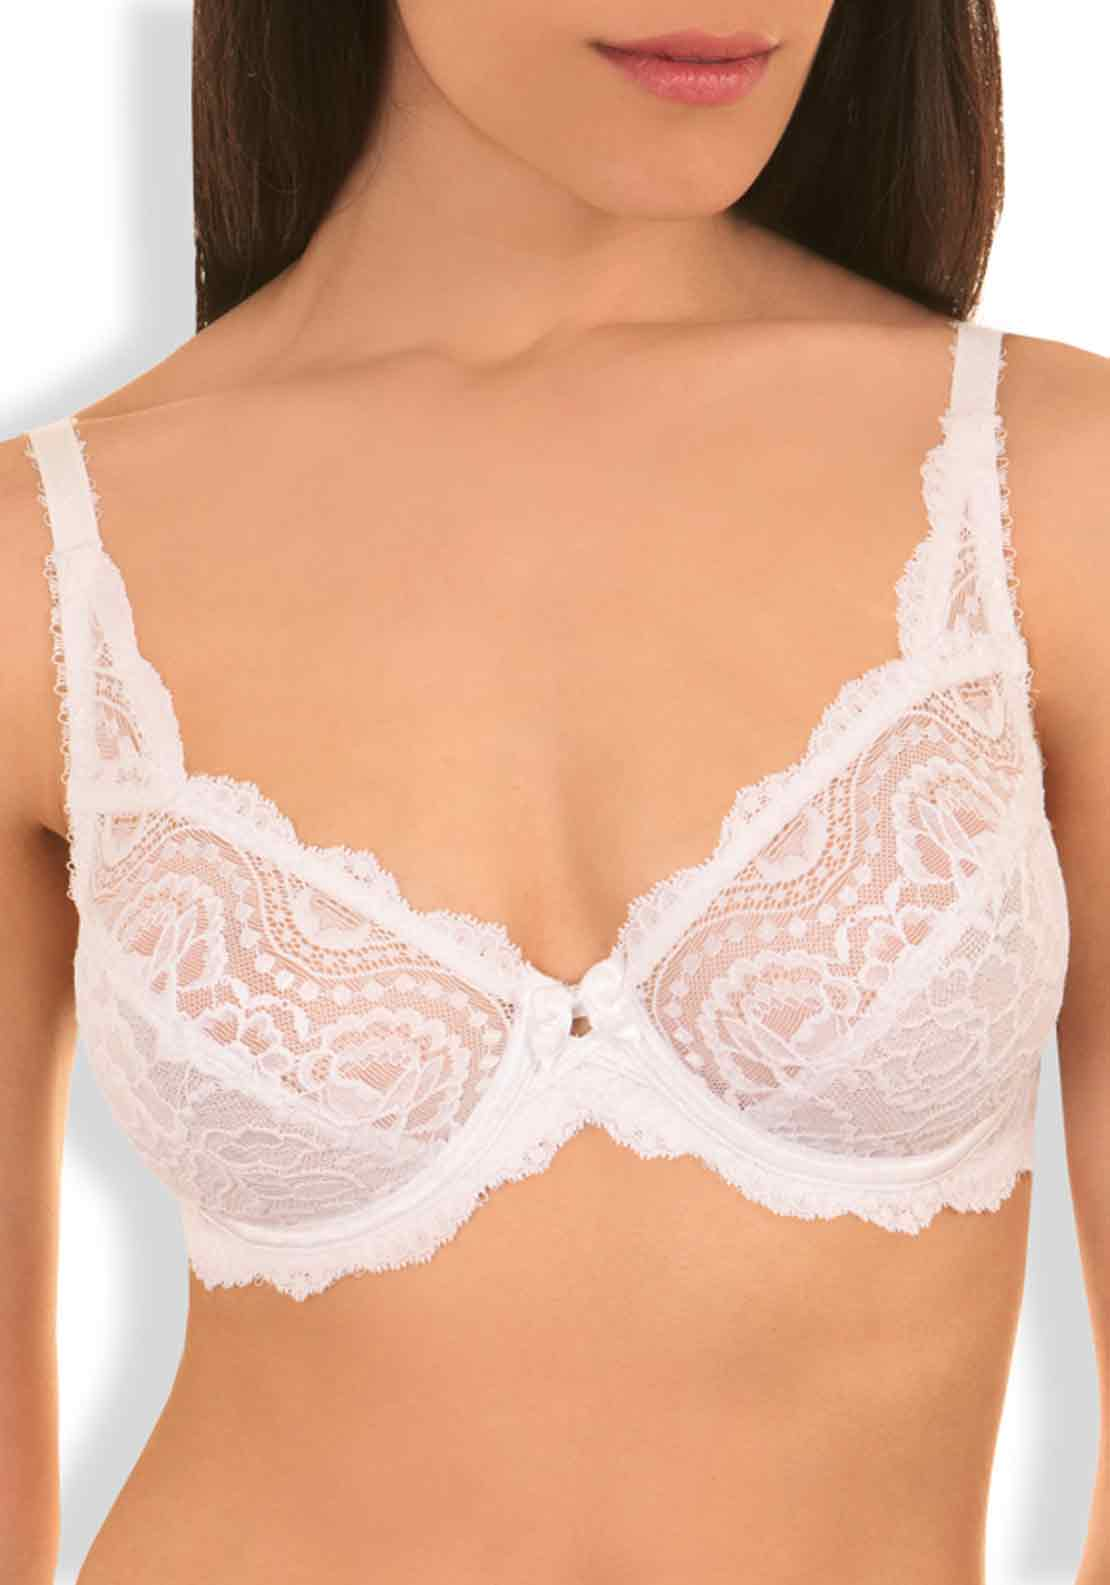 Playtex Flower Elegance Lace Underwired Bra, White